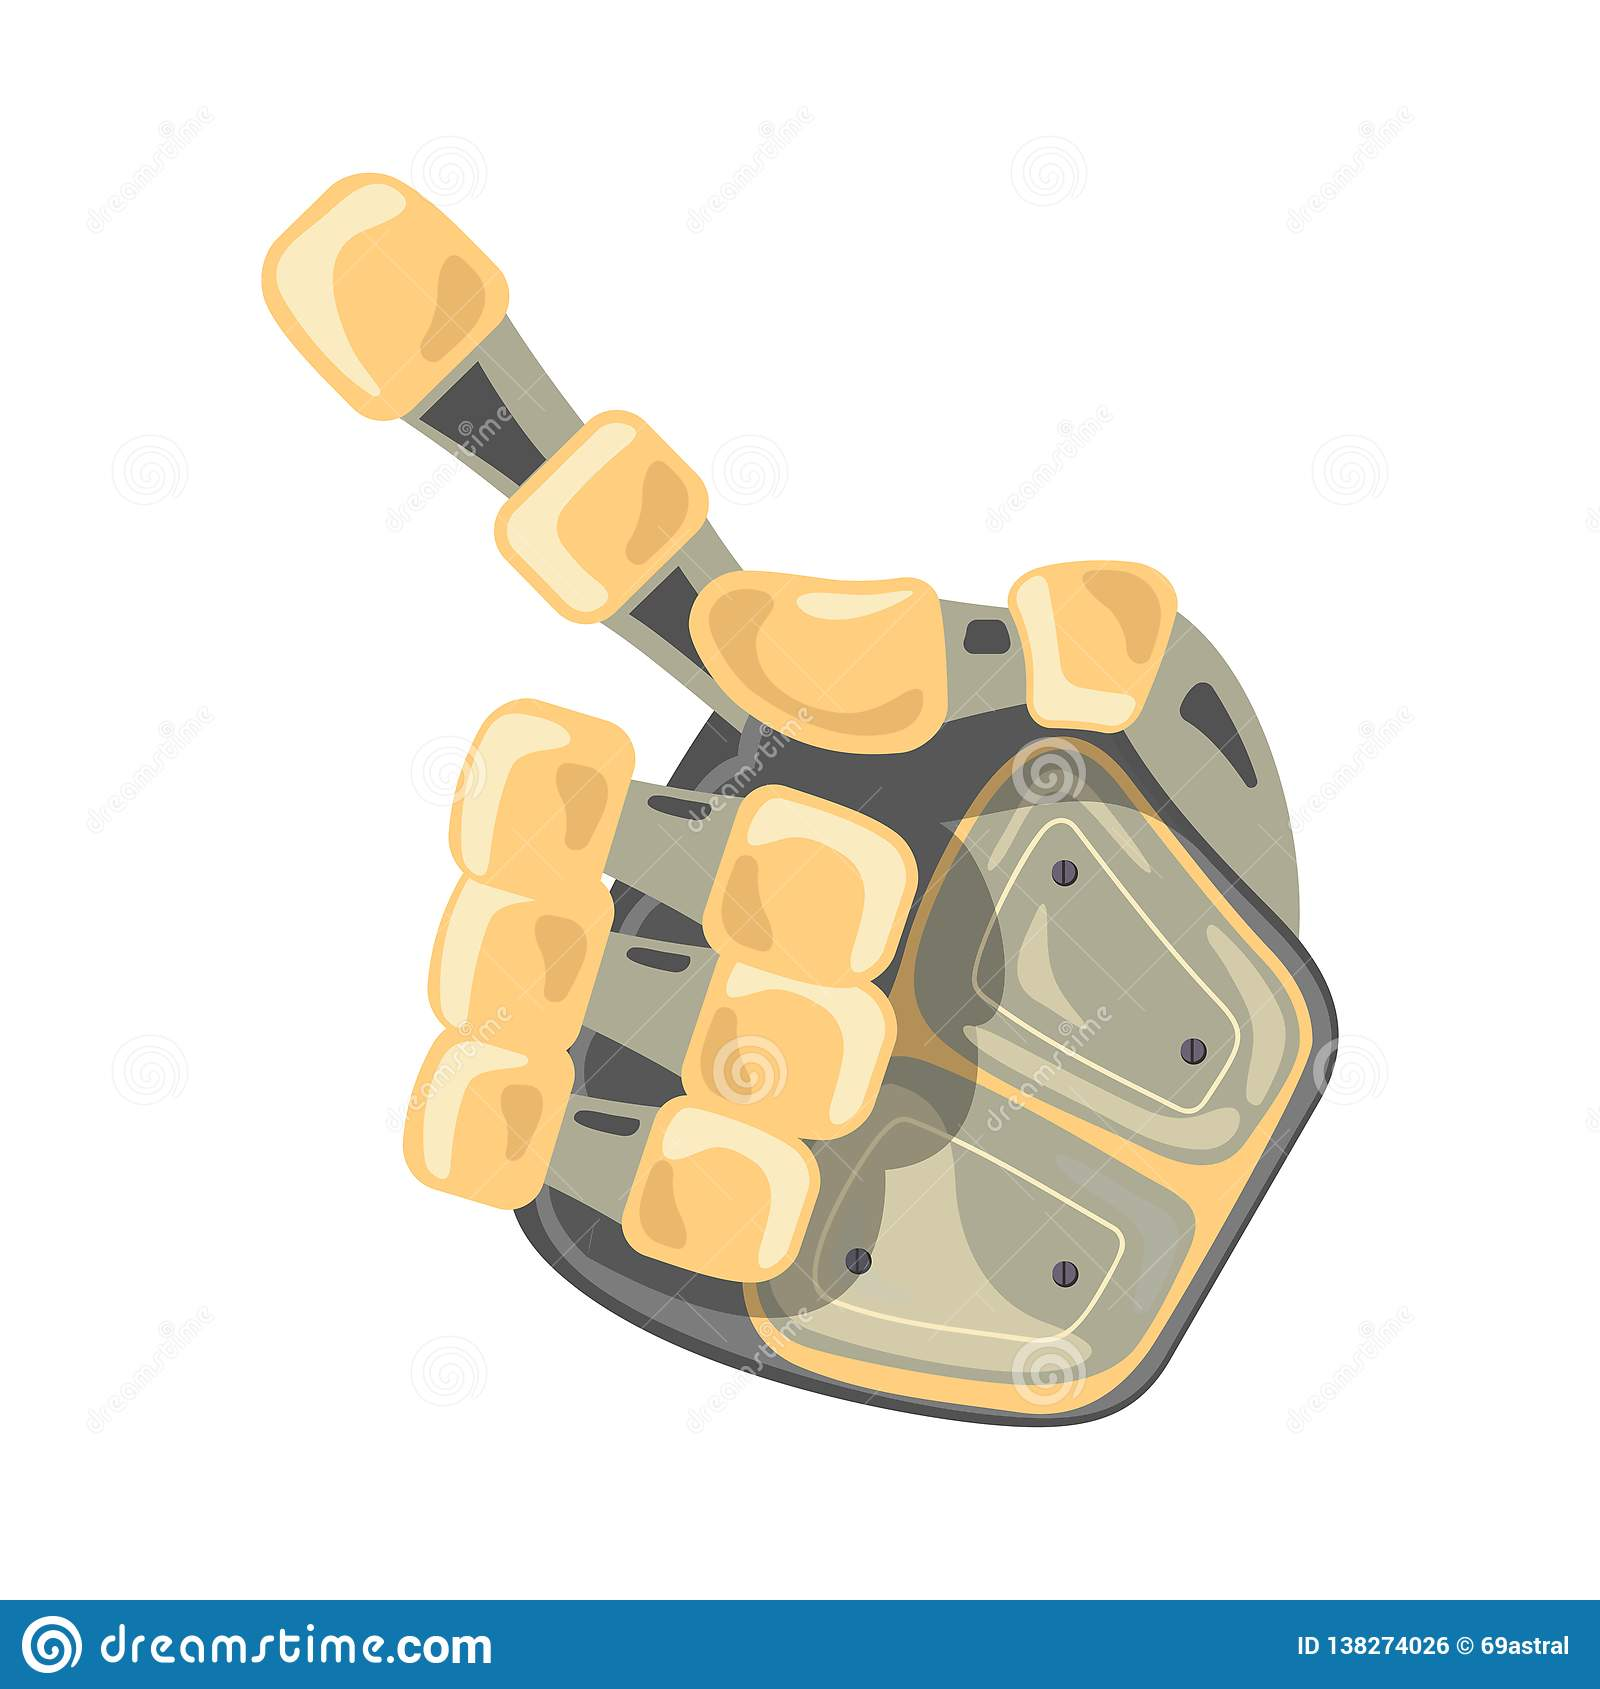 Robot hand. Hand gestures. One number. Pointer. Artificial Intelligence futuristic design concept. Vector illustration.